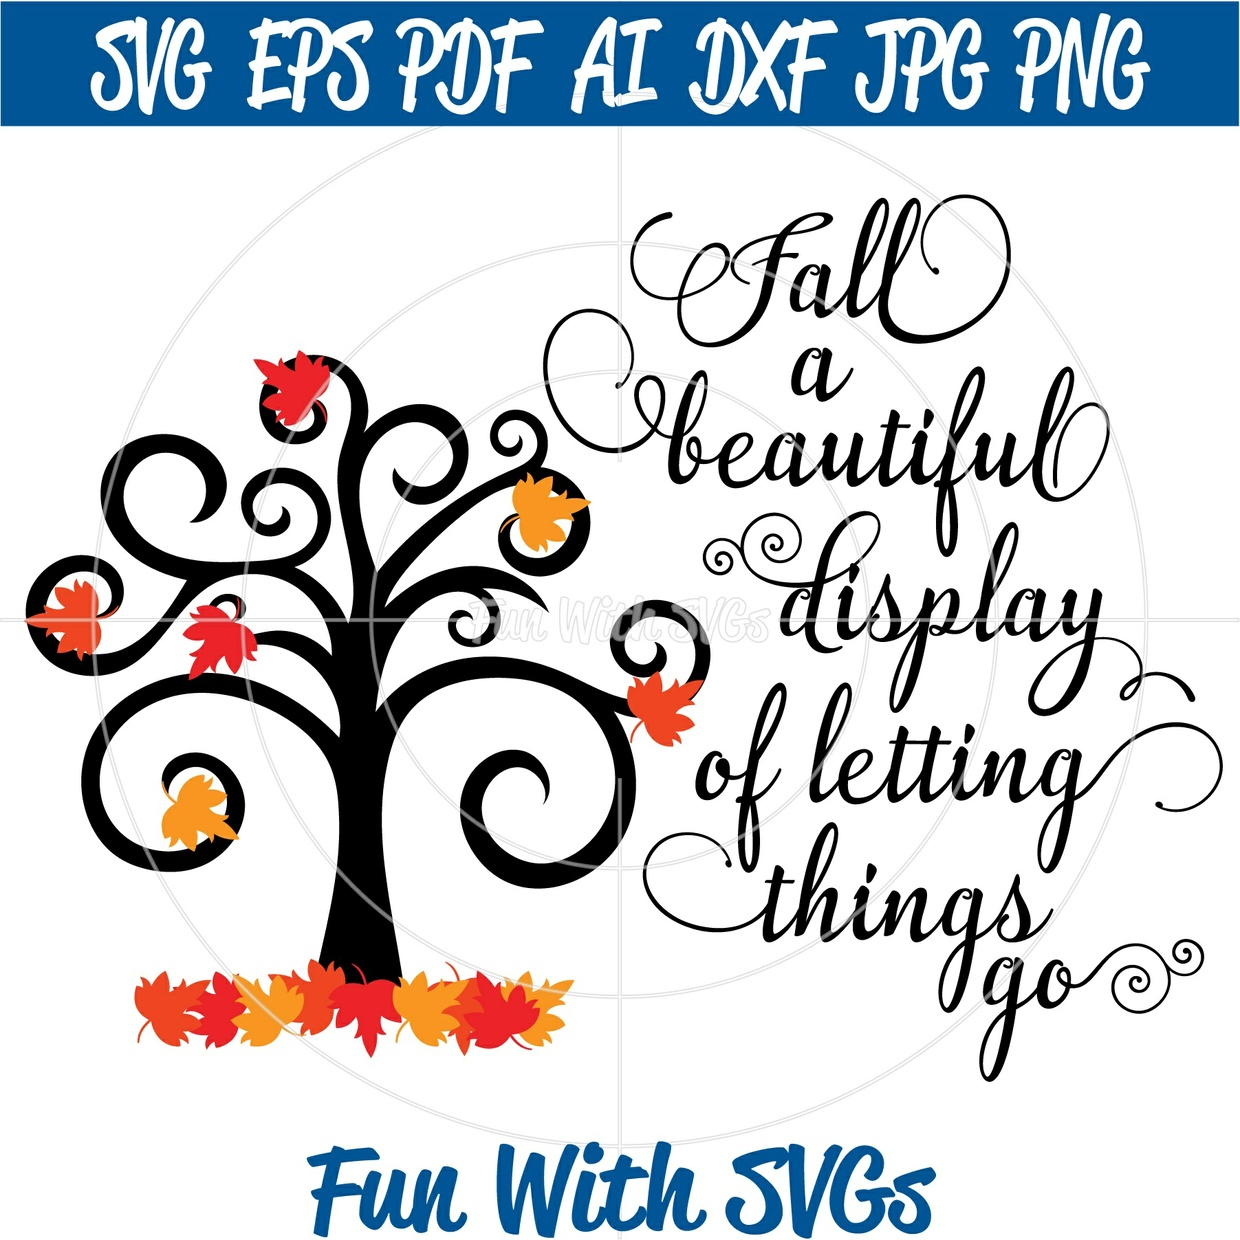 Fall Decoration SVG File, SVG Files, Let Things Go, falling leaves, Cricut files, Silhouette files